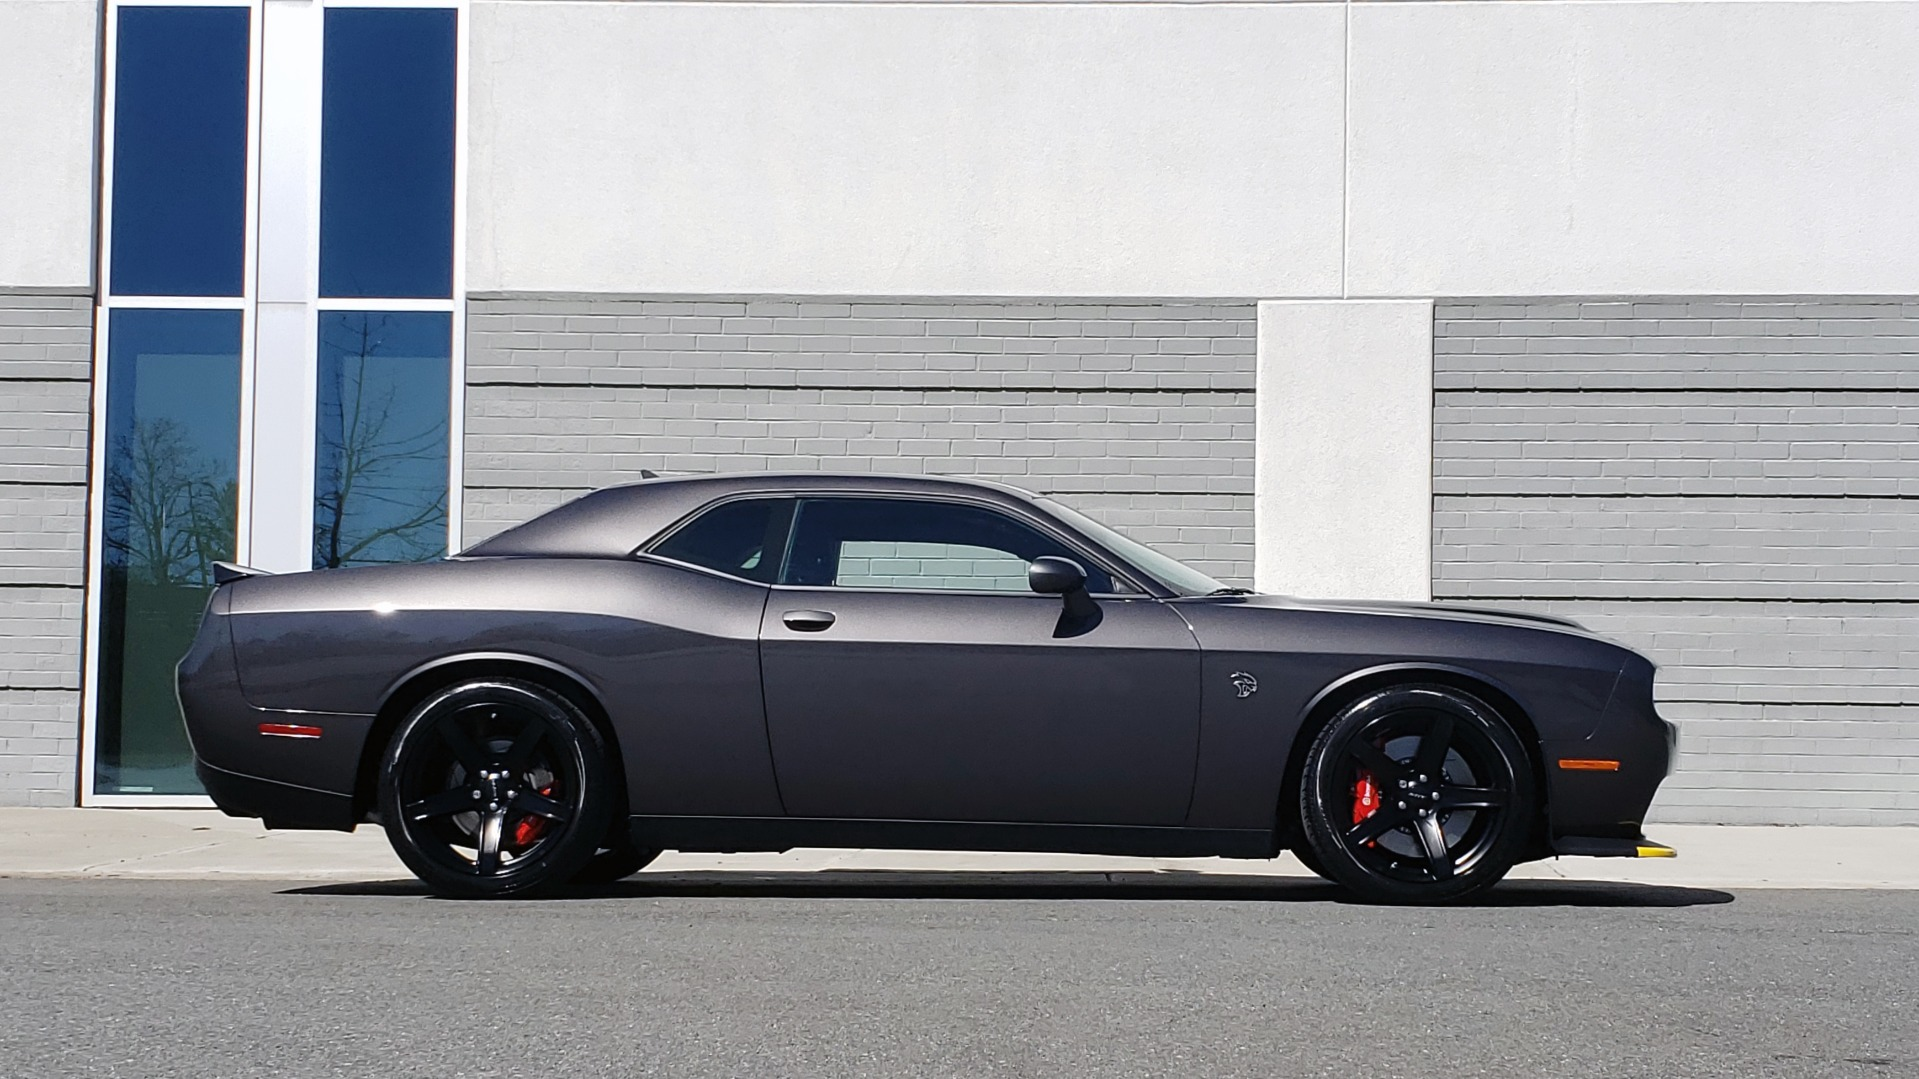 Used 2020 Dodge CHALLENGER SRT HELLCAT (717HP) / NAV / AUTO / CLOTH / REARVIEW / LOW MILES for sale Sold at Formula Imports in Charlotte NC 28227 7